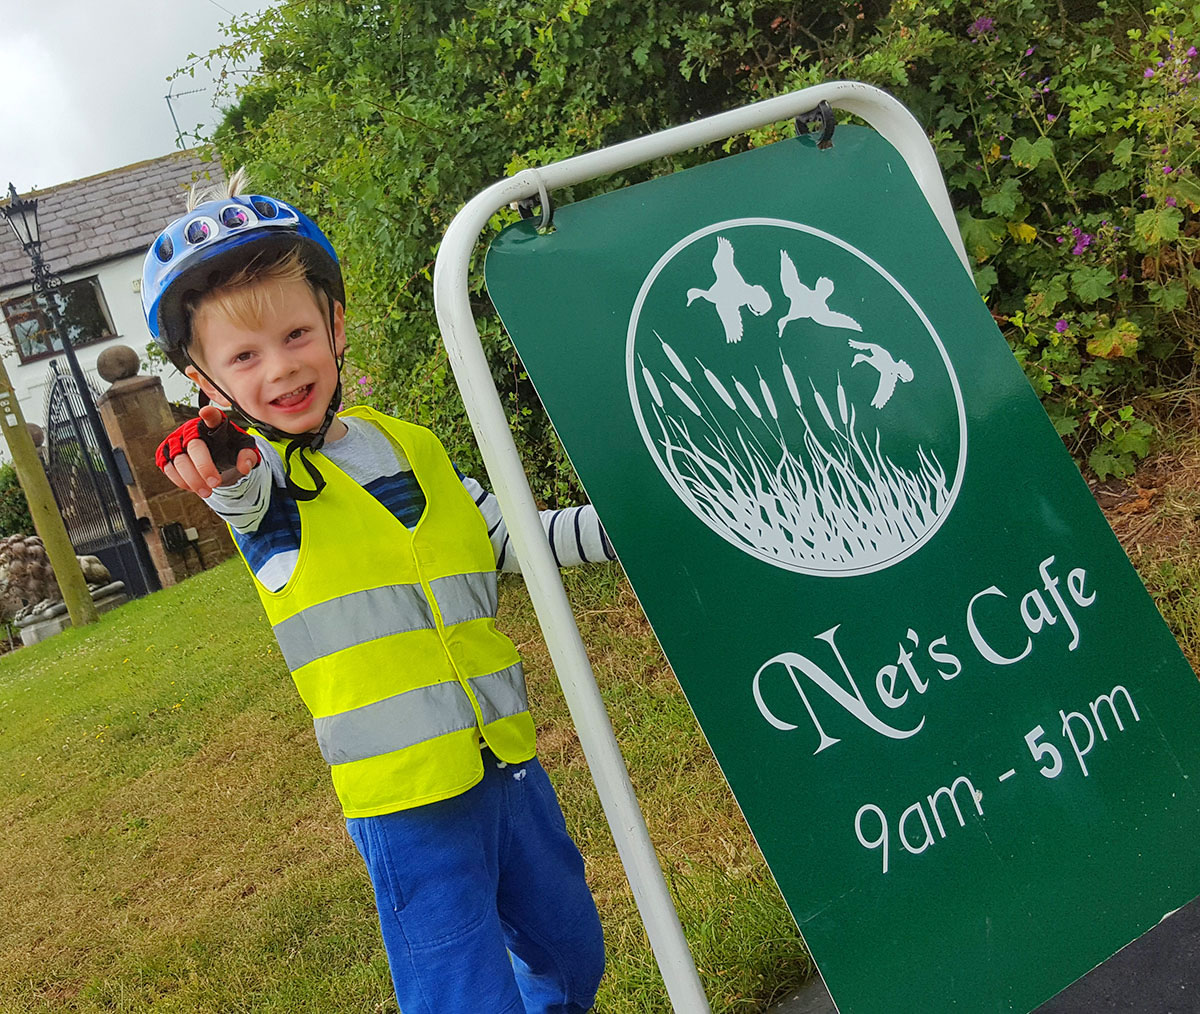 Nets Cafe Neston chester greenway